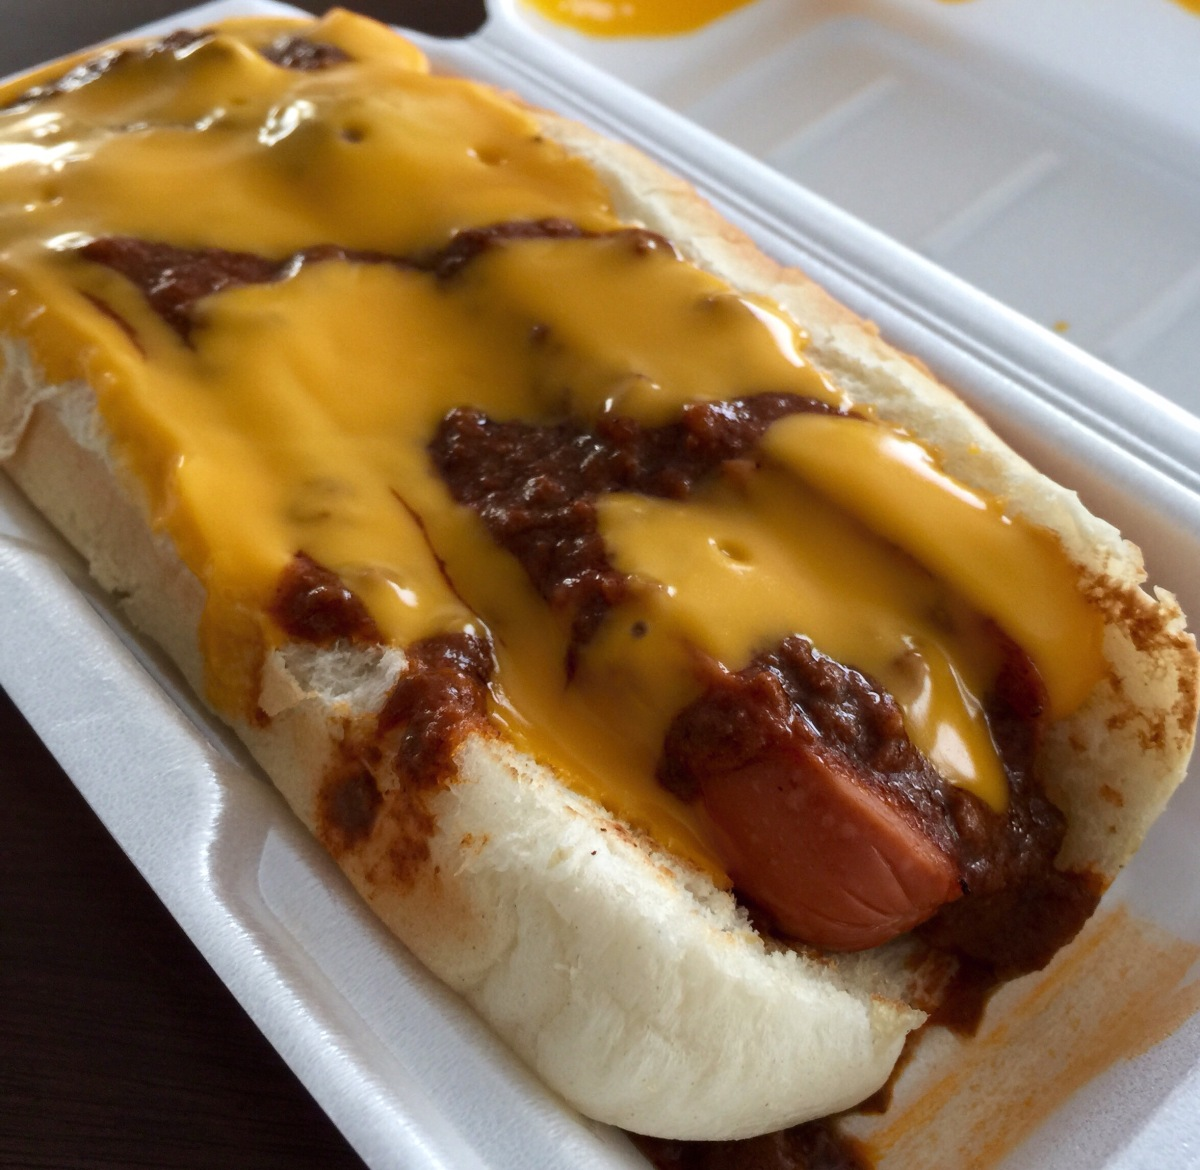 Chili-Cheese Dogs: Good Chili is KEY